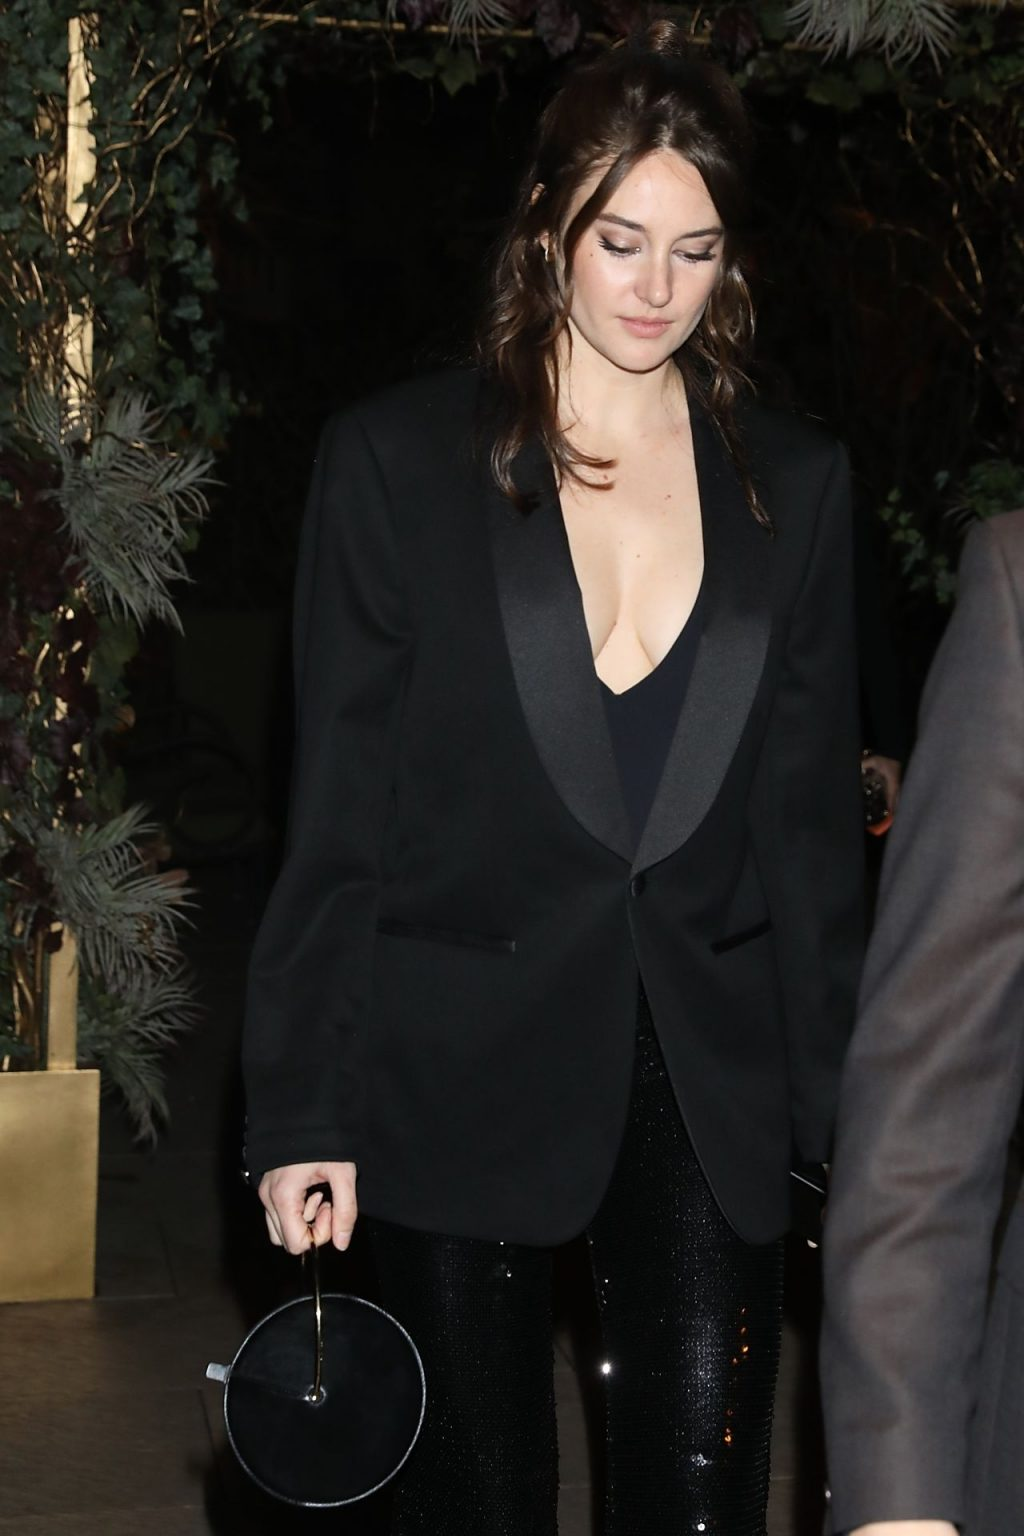 Shailene Woodley Seen Arriving at Monot F/W 2020 Show in Paris (8 Photos)